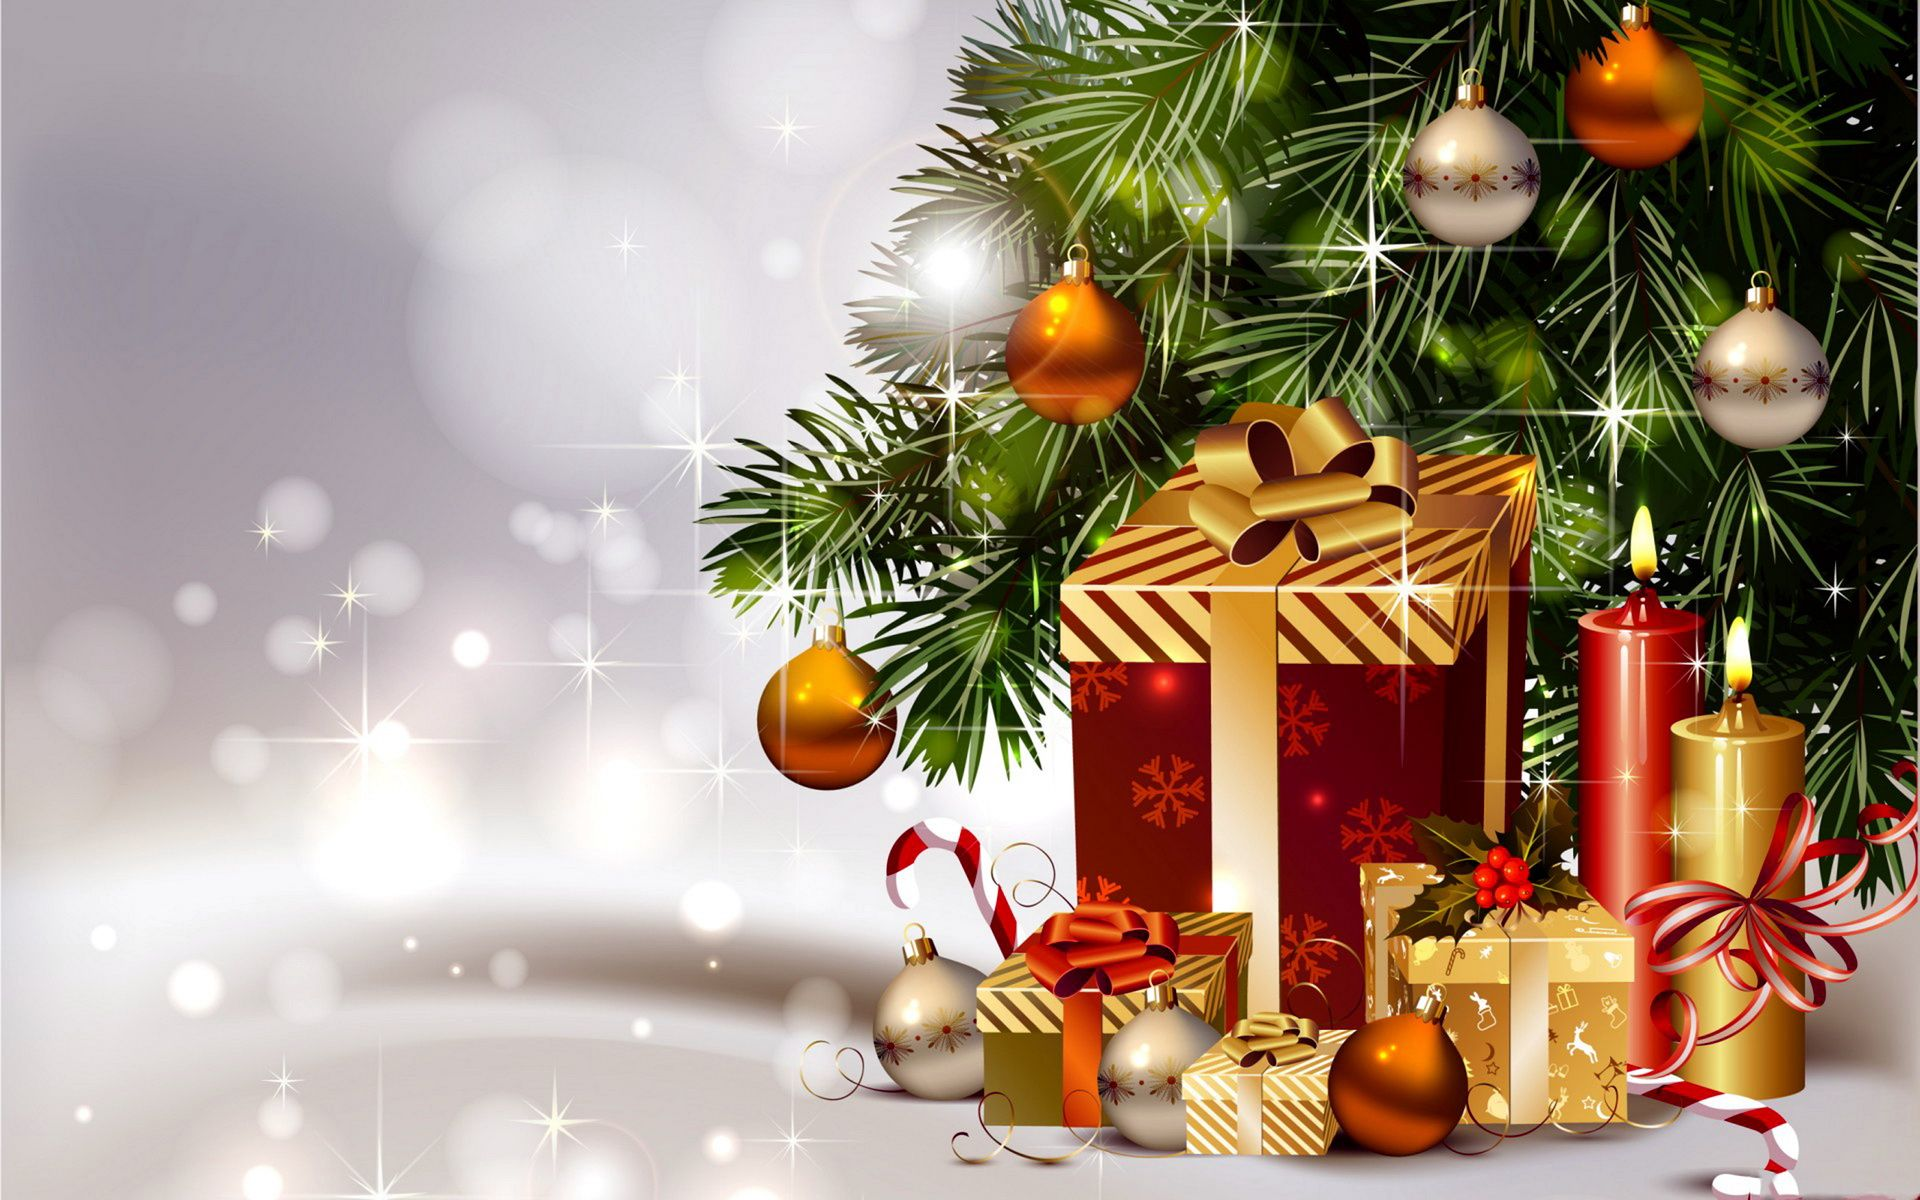 3d christmas wallpapers - free download latest 3d christmas